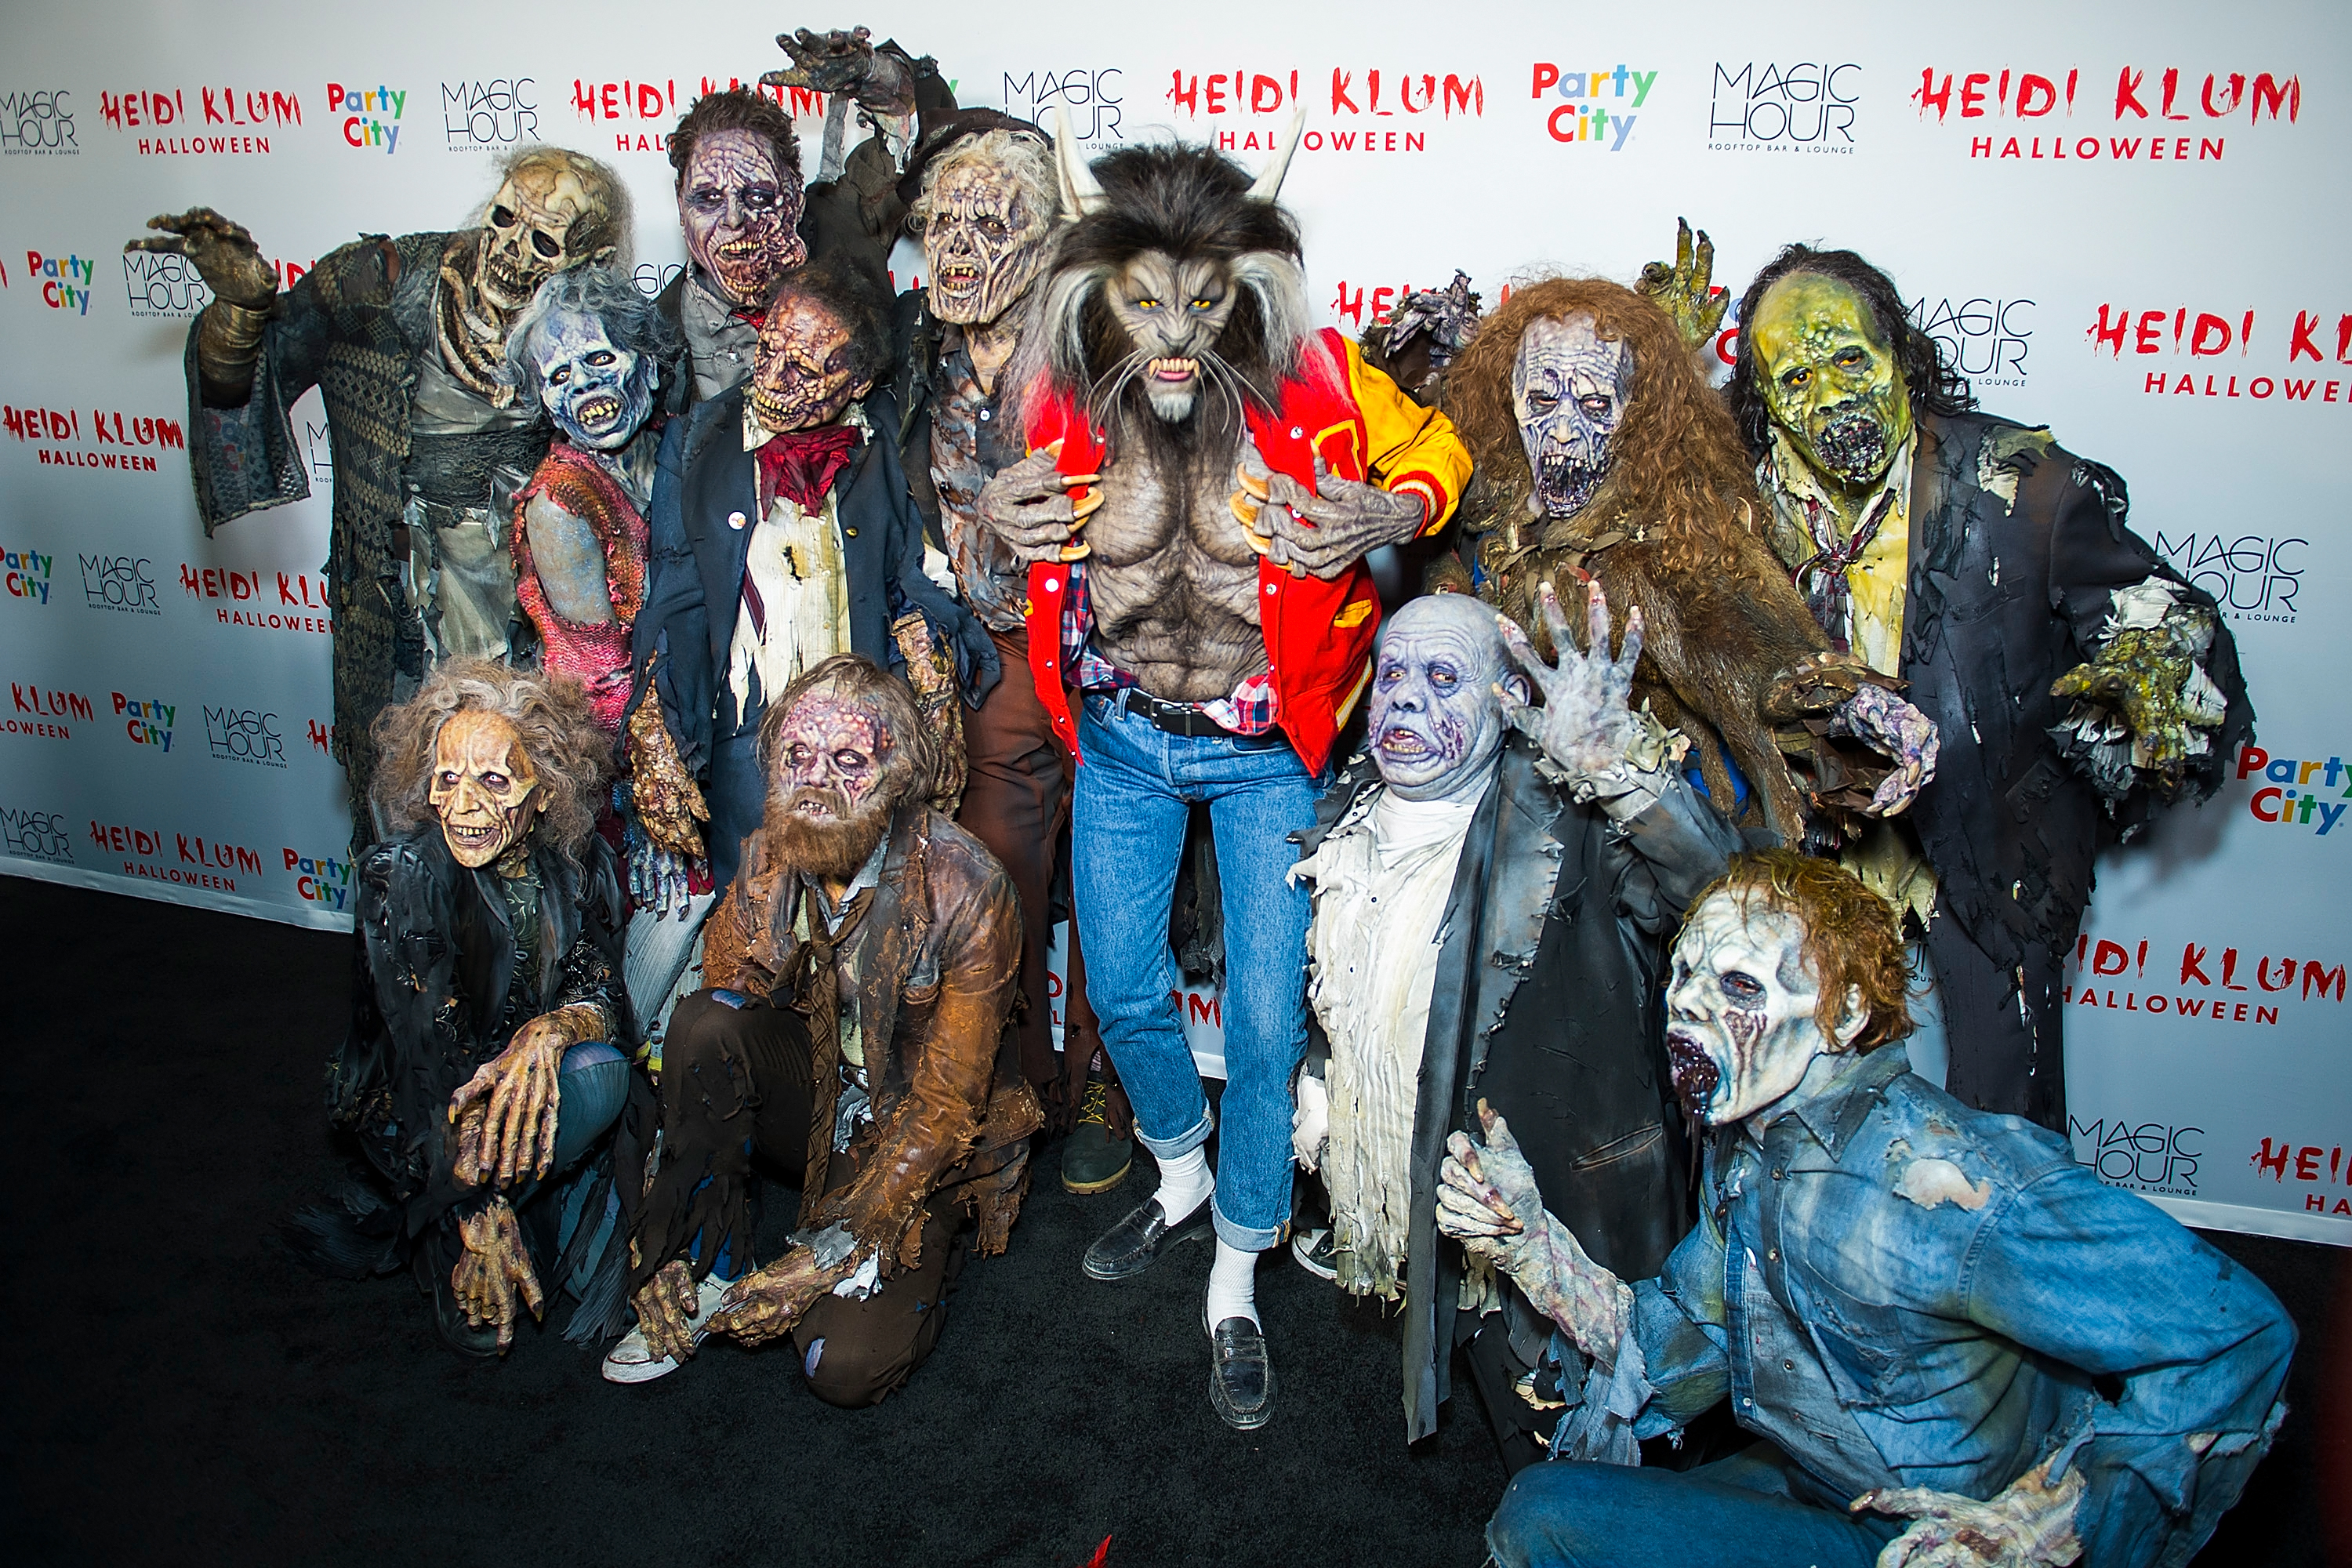 Heidi Klum attends her 18th Annual Halloween Party in New York City. (Photo by Michael Stewart/Getty Images)